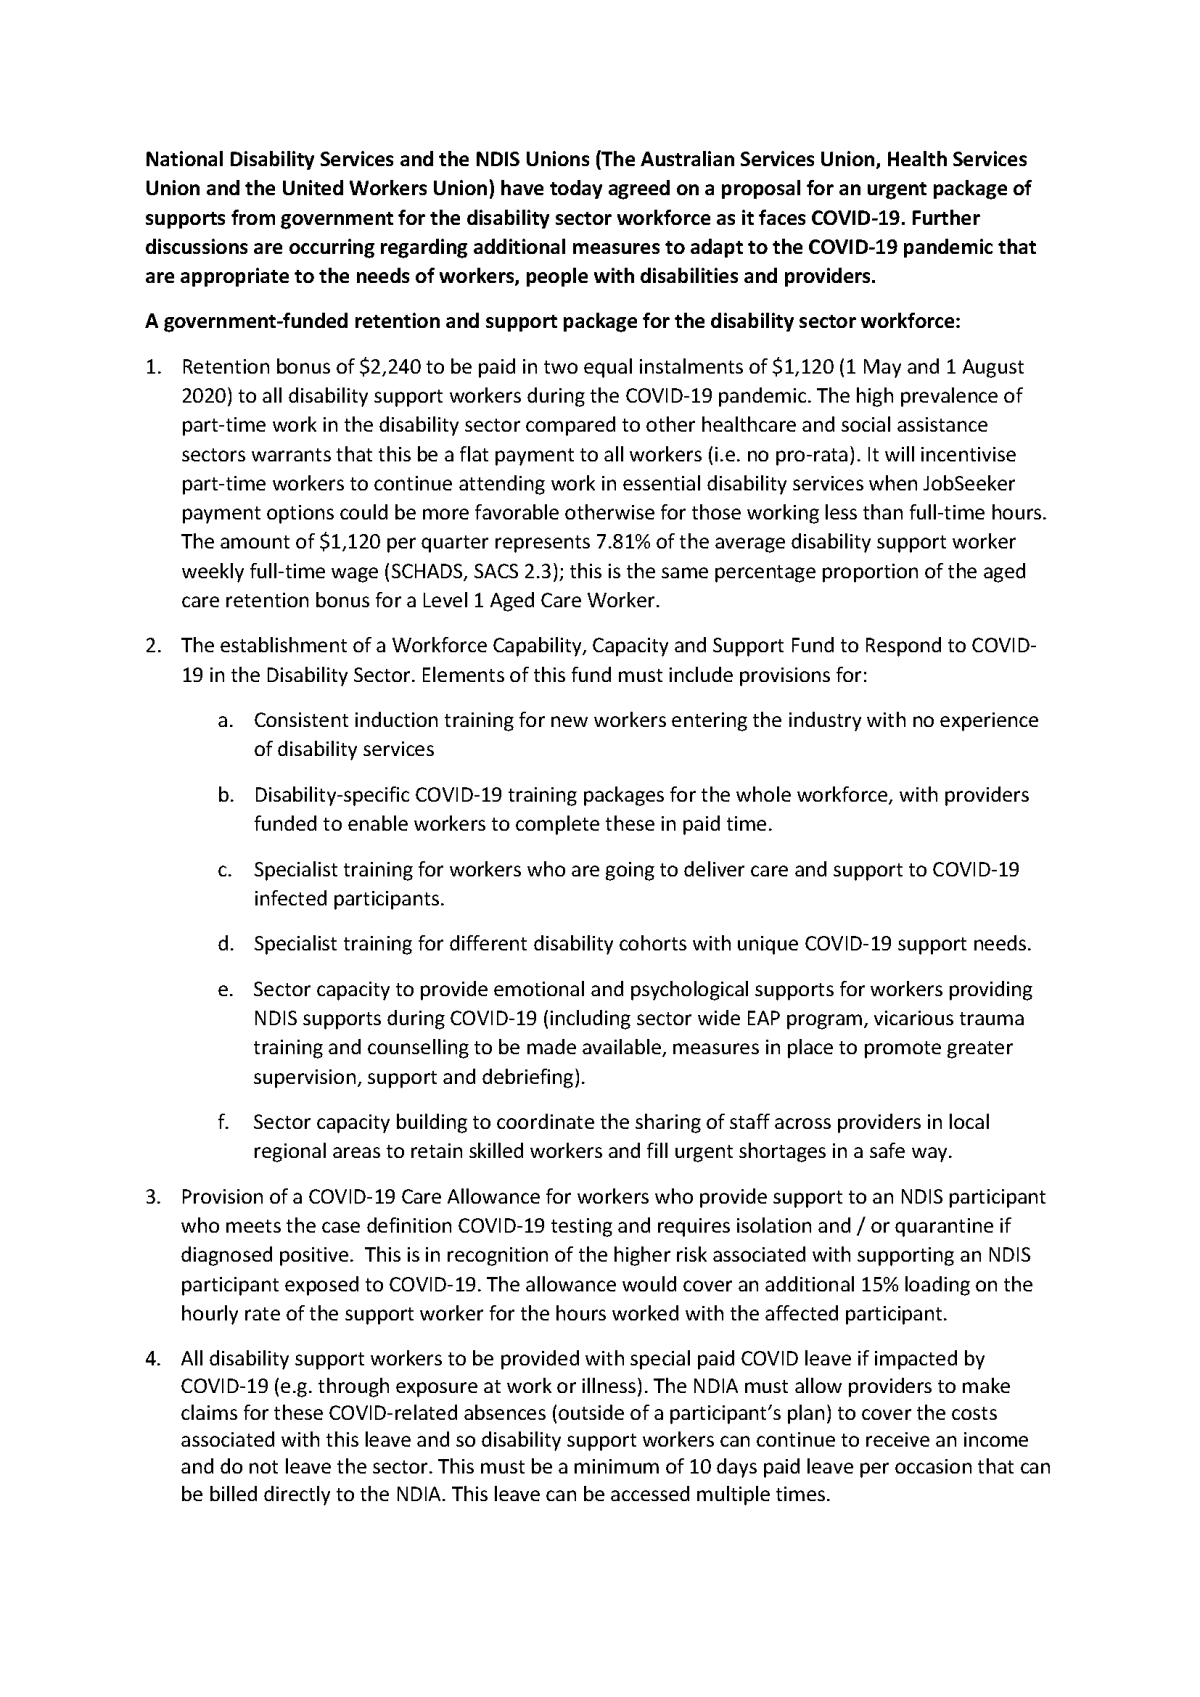 20200407 - Disability Sector Support - Joint Letter and Proposal - NDS-HSU-ASU-UWU.pdf_Page_2